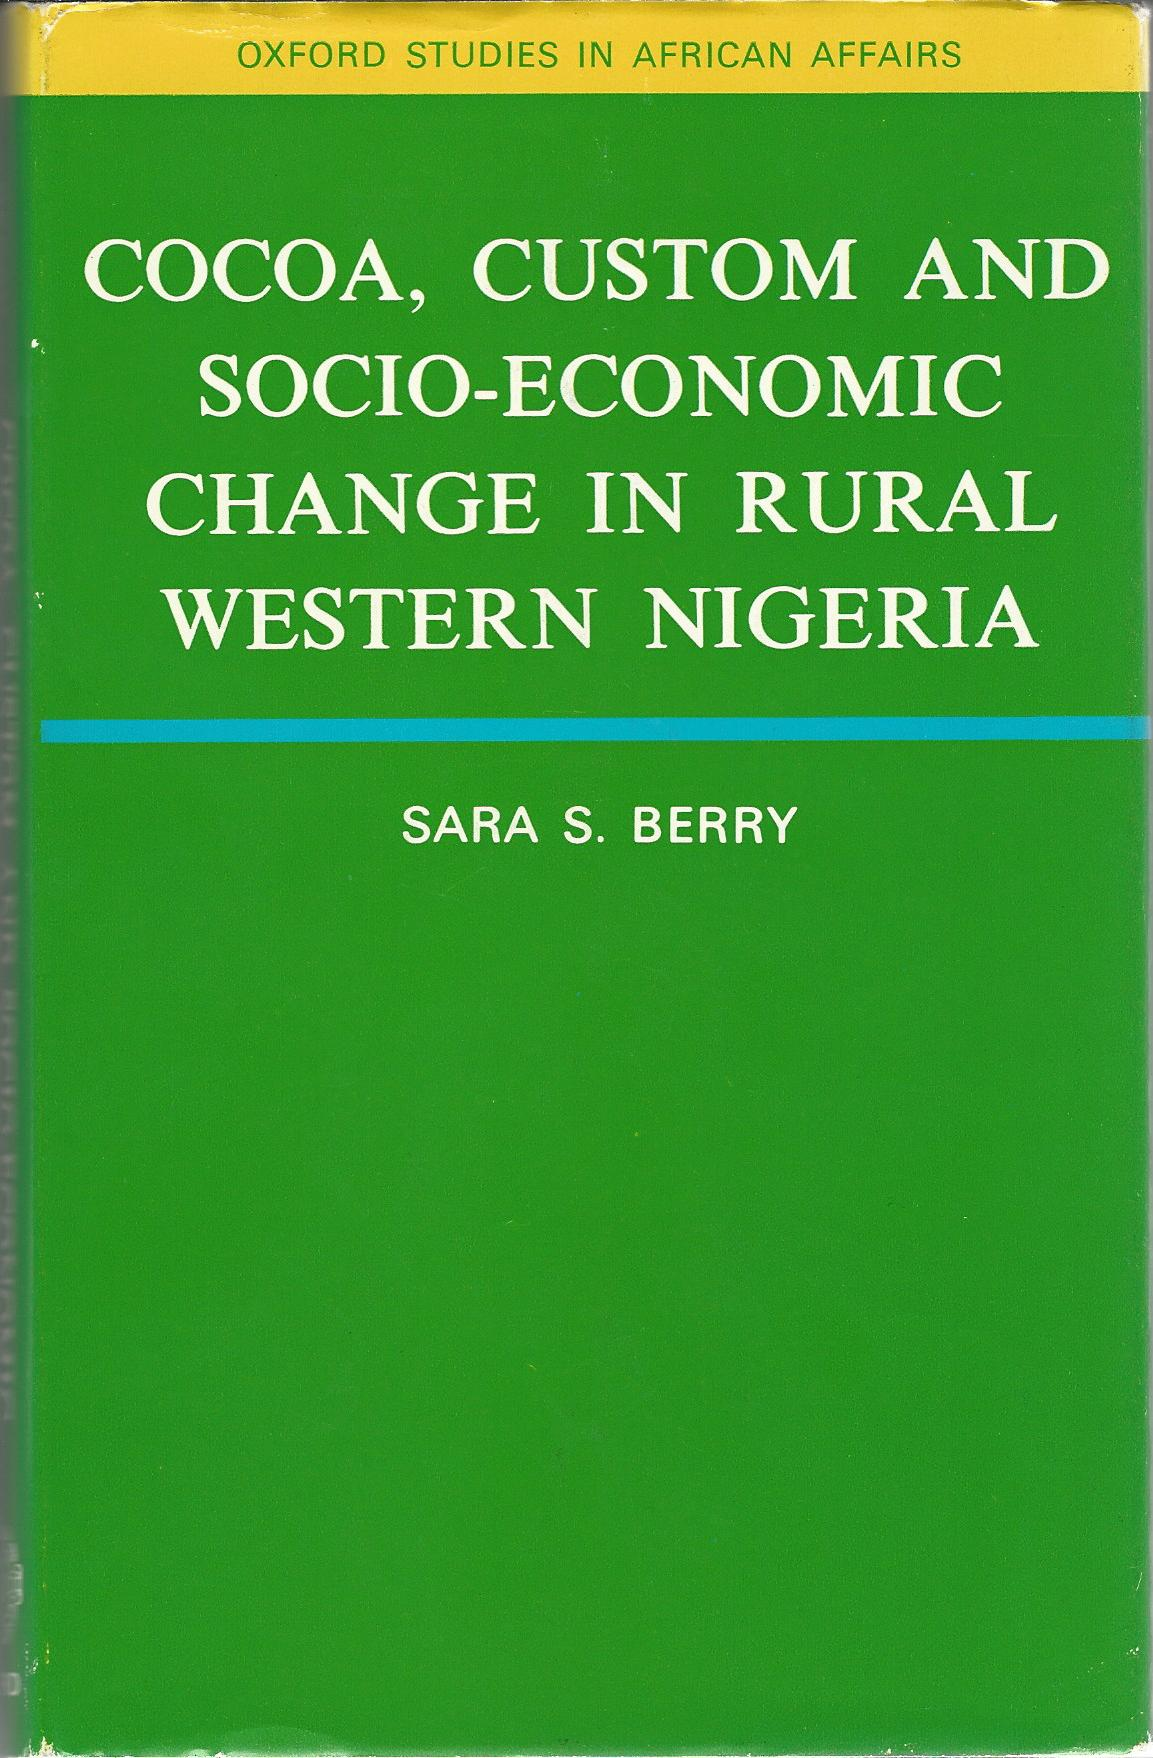 Image for Cocoa, Custom and Socio-economic Change in Rural Western Nigeria (Oxford Studies in African Affairs)